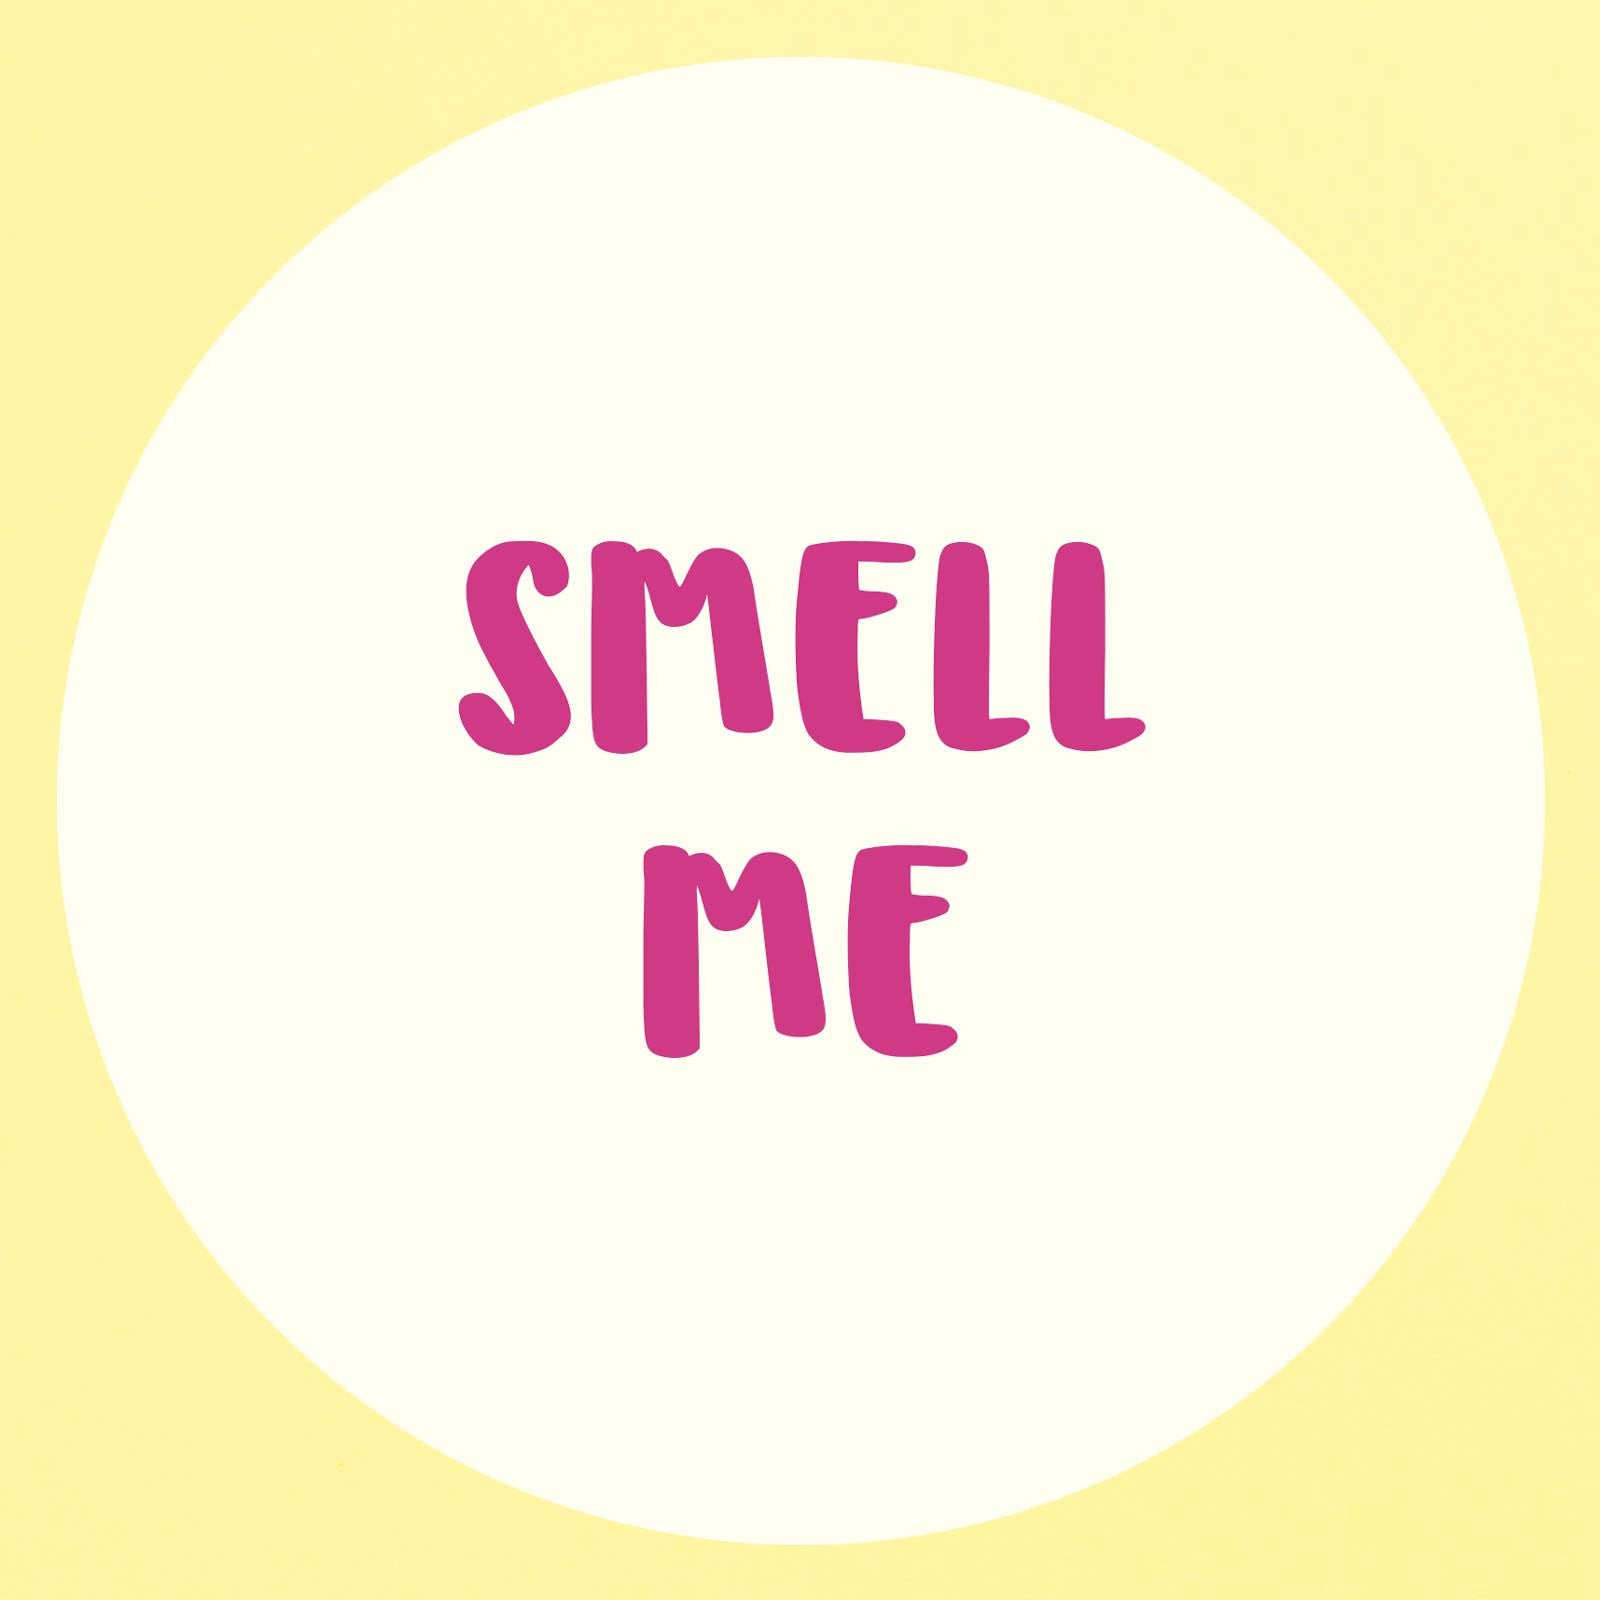 smell me